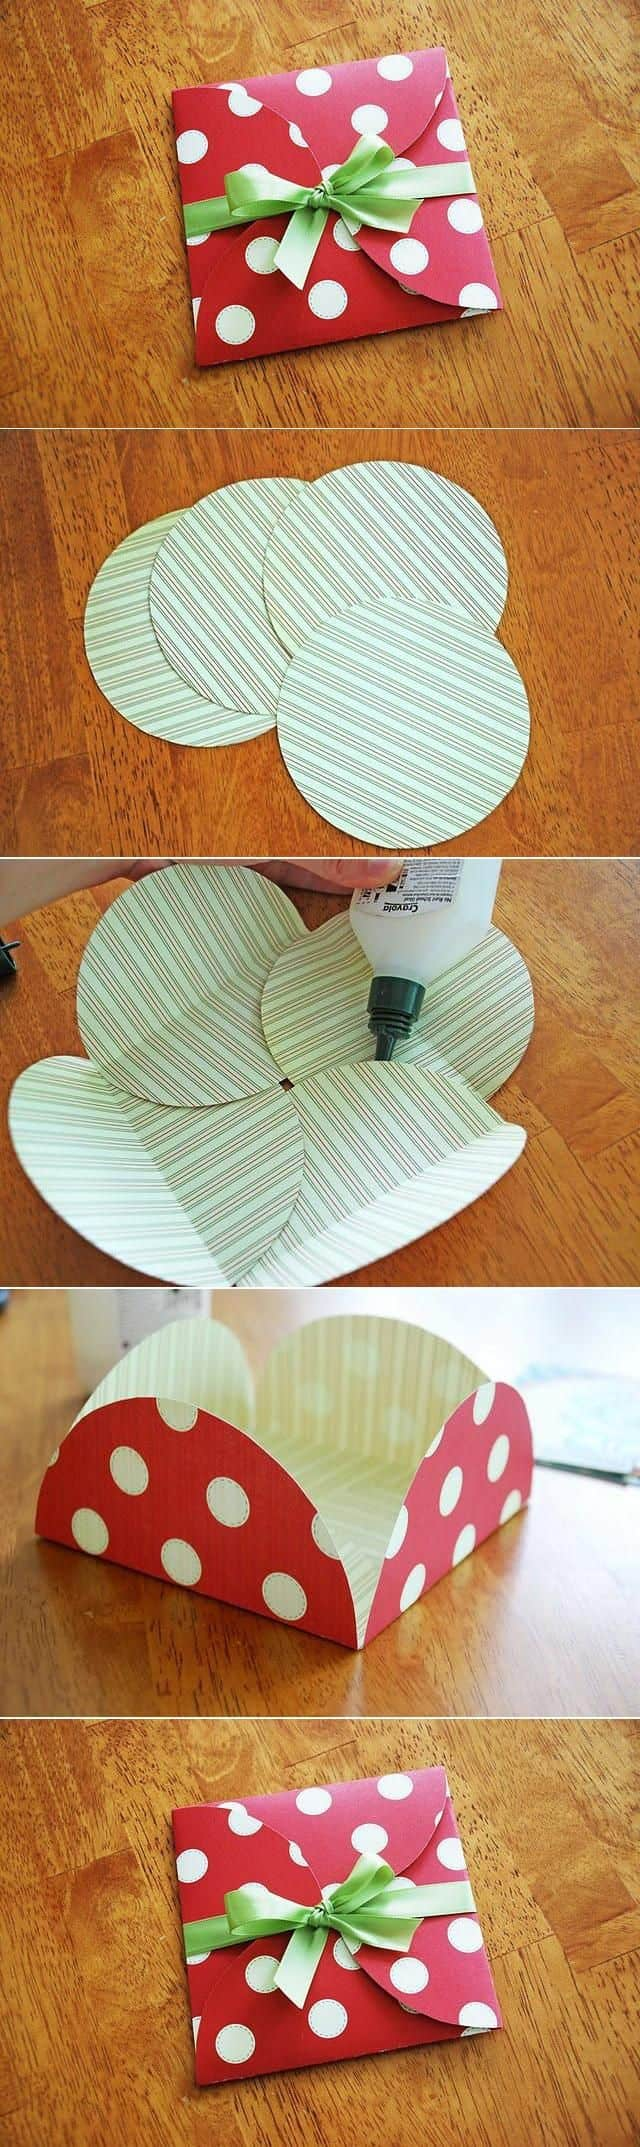 simple cute paper crafts you could try homesthetics inspiring